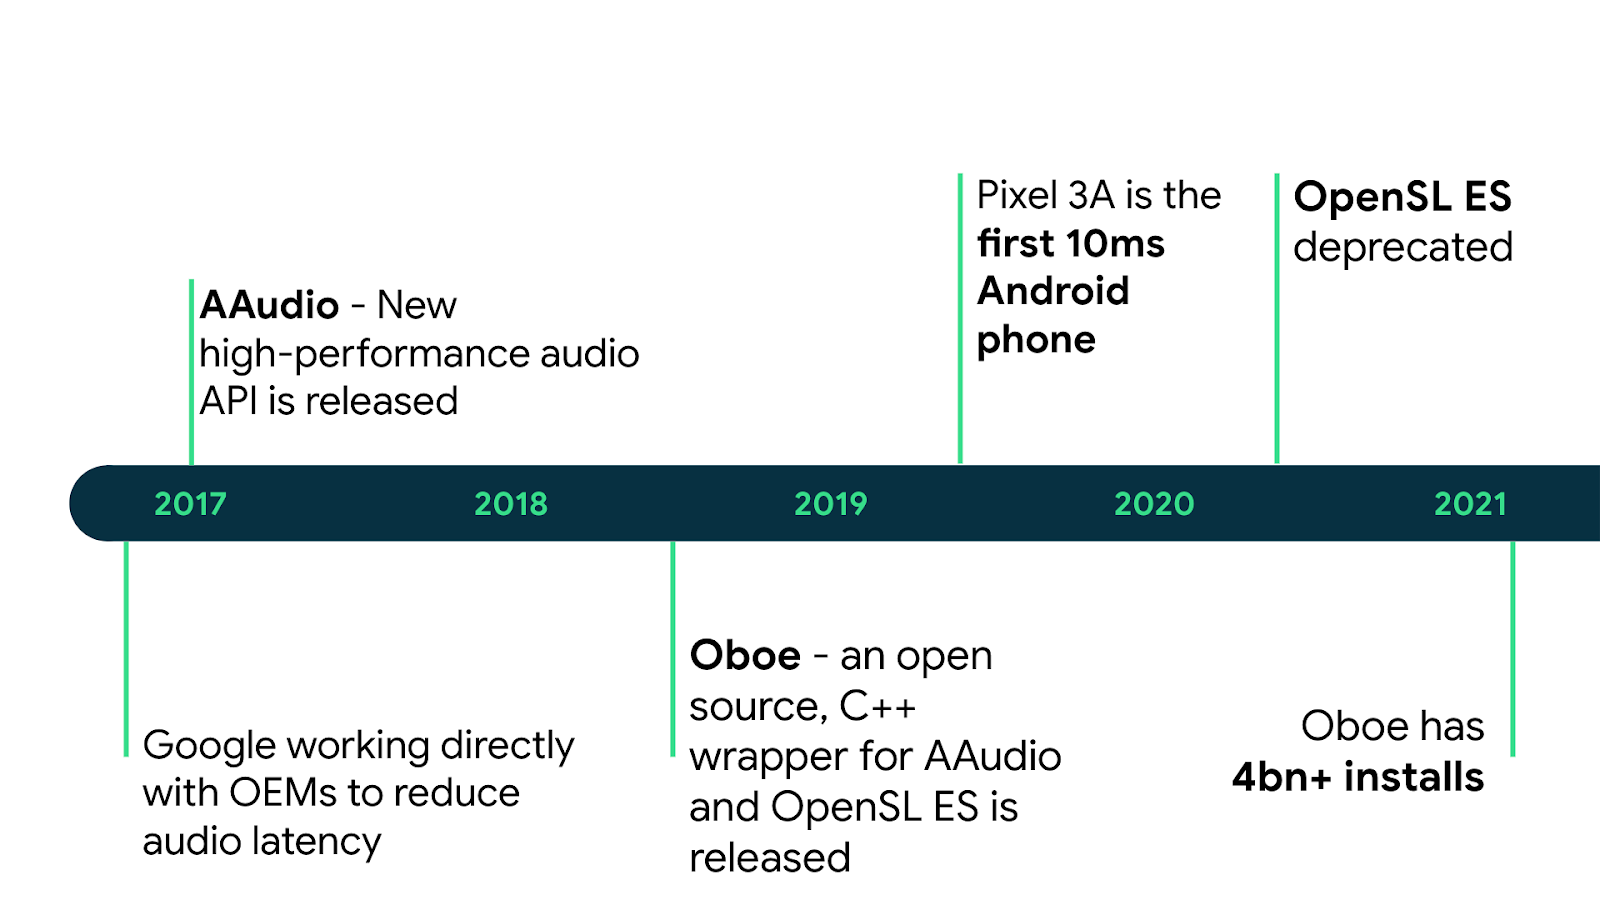 timeline of key events which have had an impact on the audio latency of Android devices. Pre-2017: Google working directly with OEMs to reduce audio latency. Start 2017: AAudio - new high-performance audio API is released. Mid-2018: Oboe - an open source, C++ wrapper for AAudio and OpenSL ES is released. Mid 2019: Pixel 3A is the first 10ms Android phone. Mid 2020: OpenSL ES is deprecated. Start 2021: Oboe has 4bn+ installs